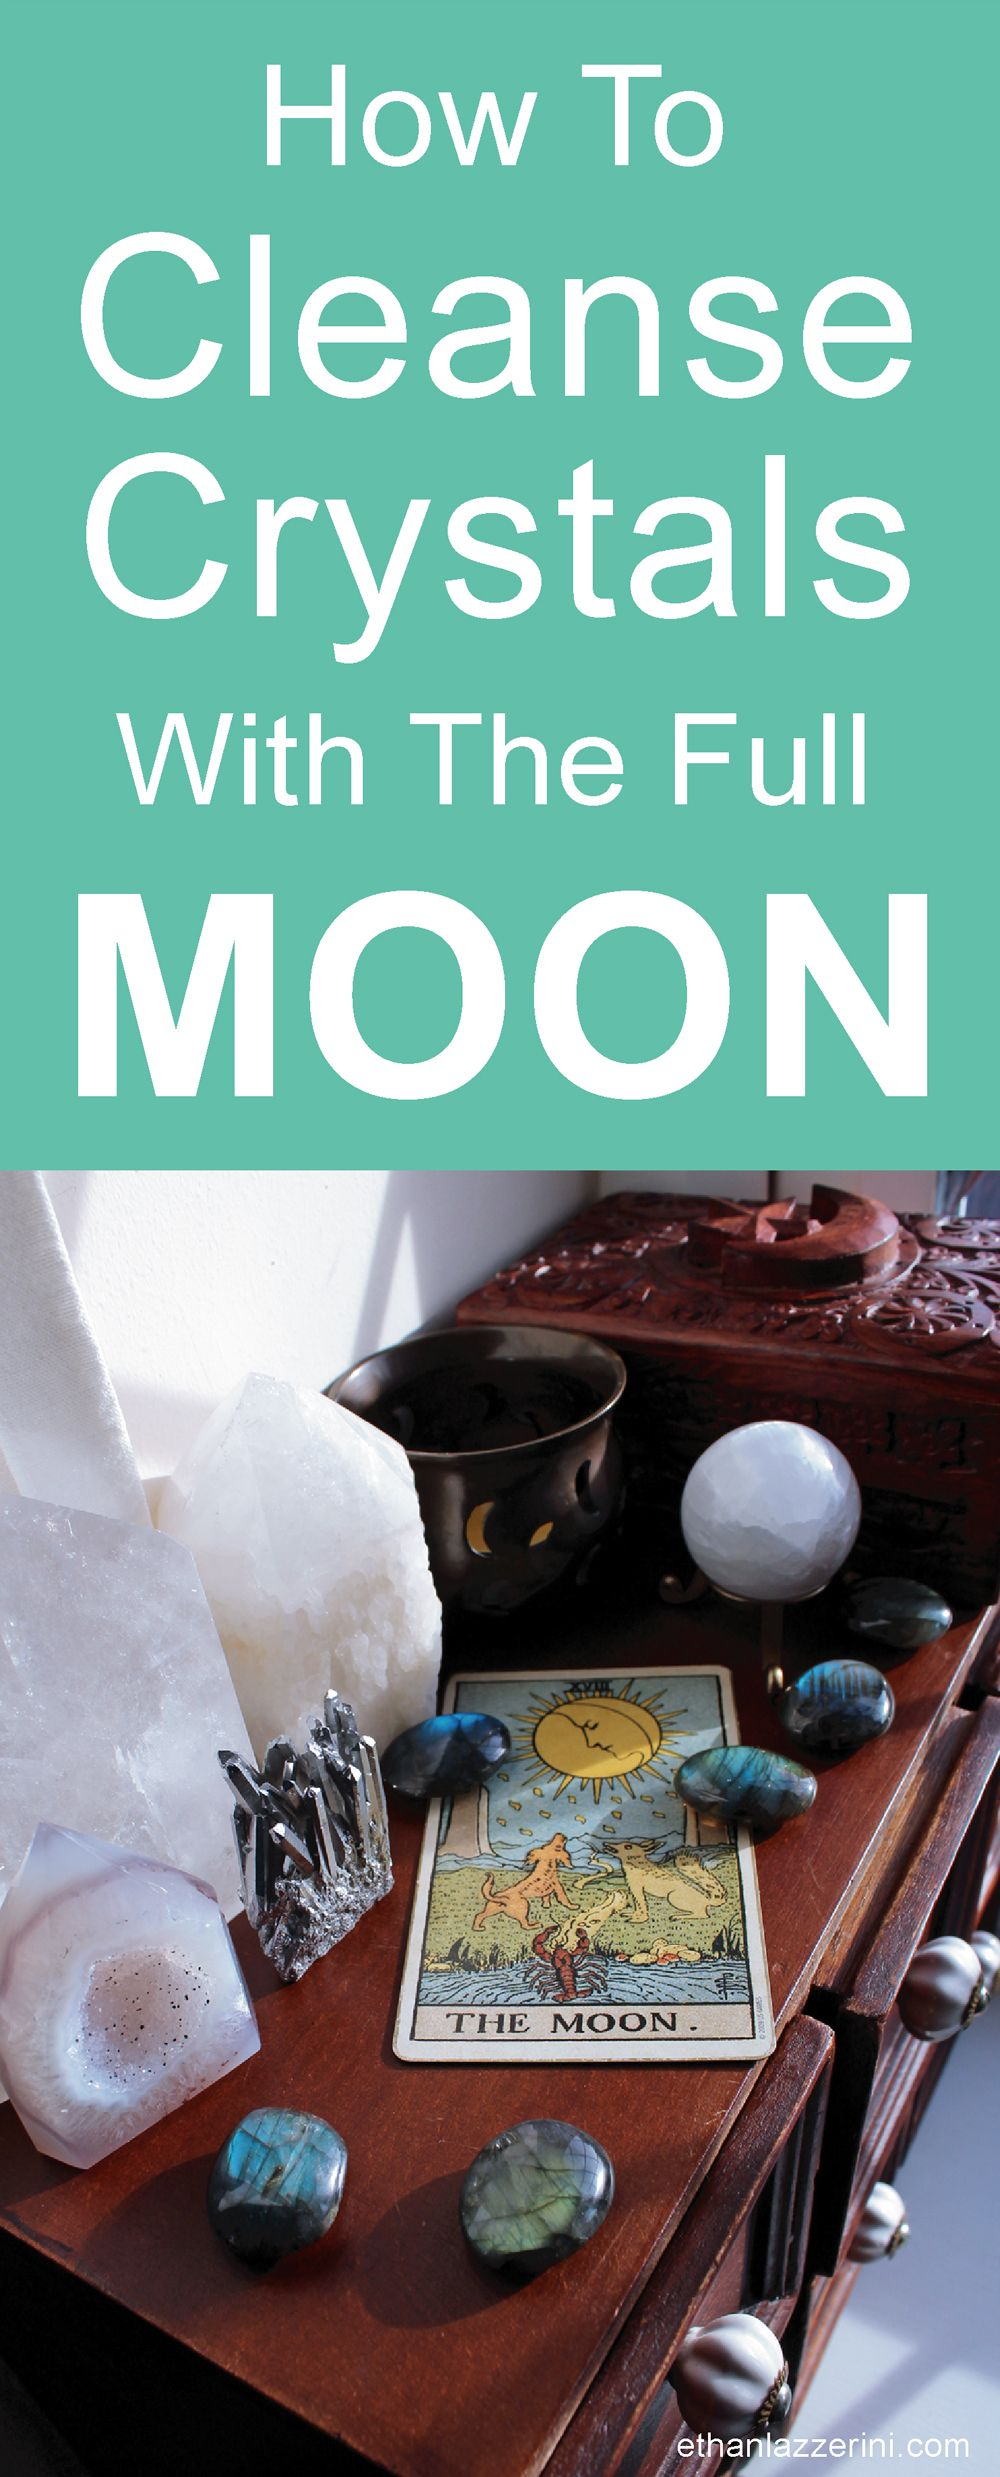 How to cleanse crystals by the full moon full moon how